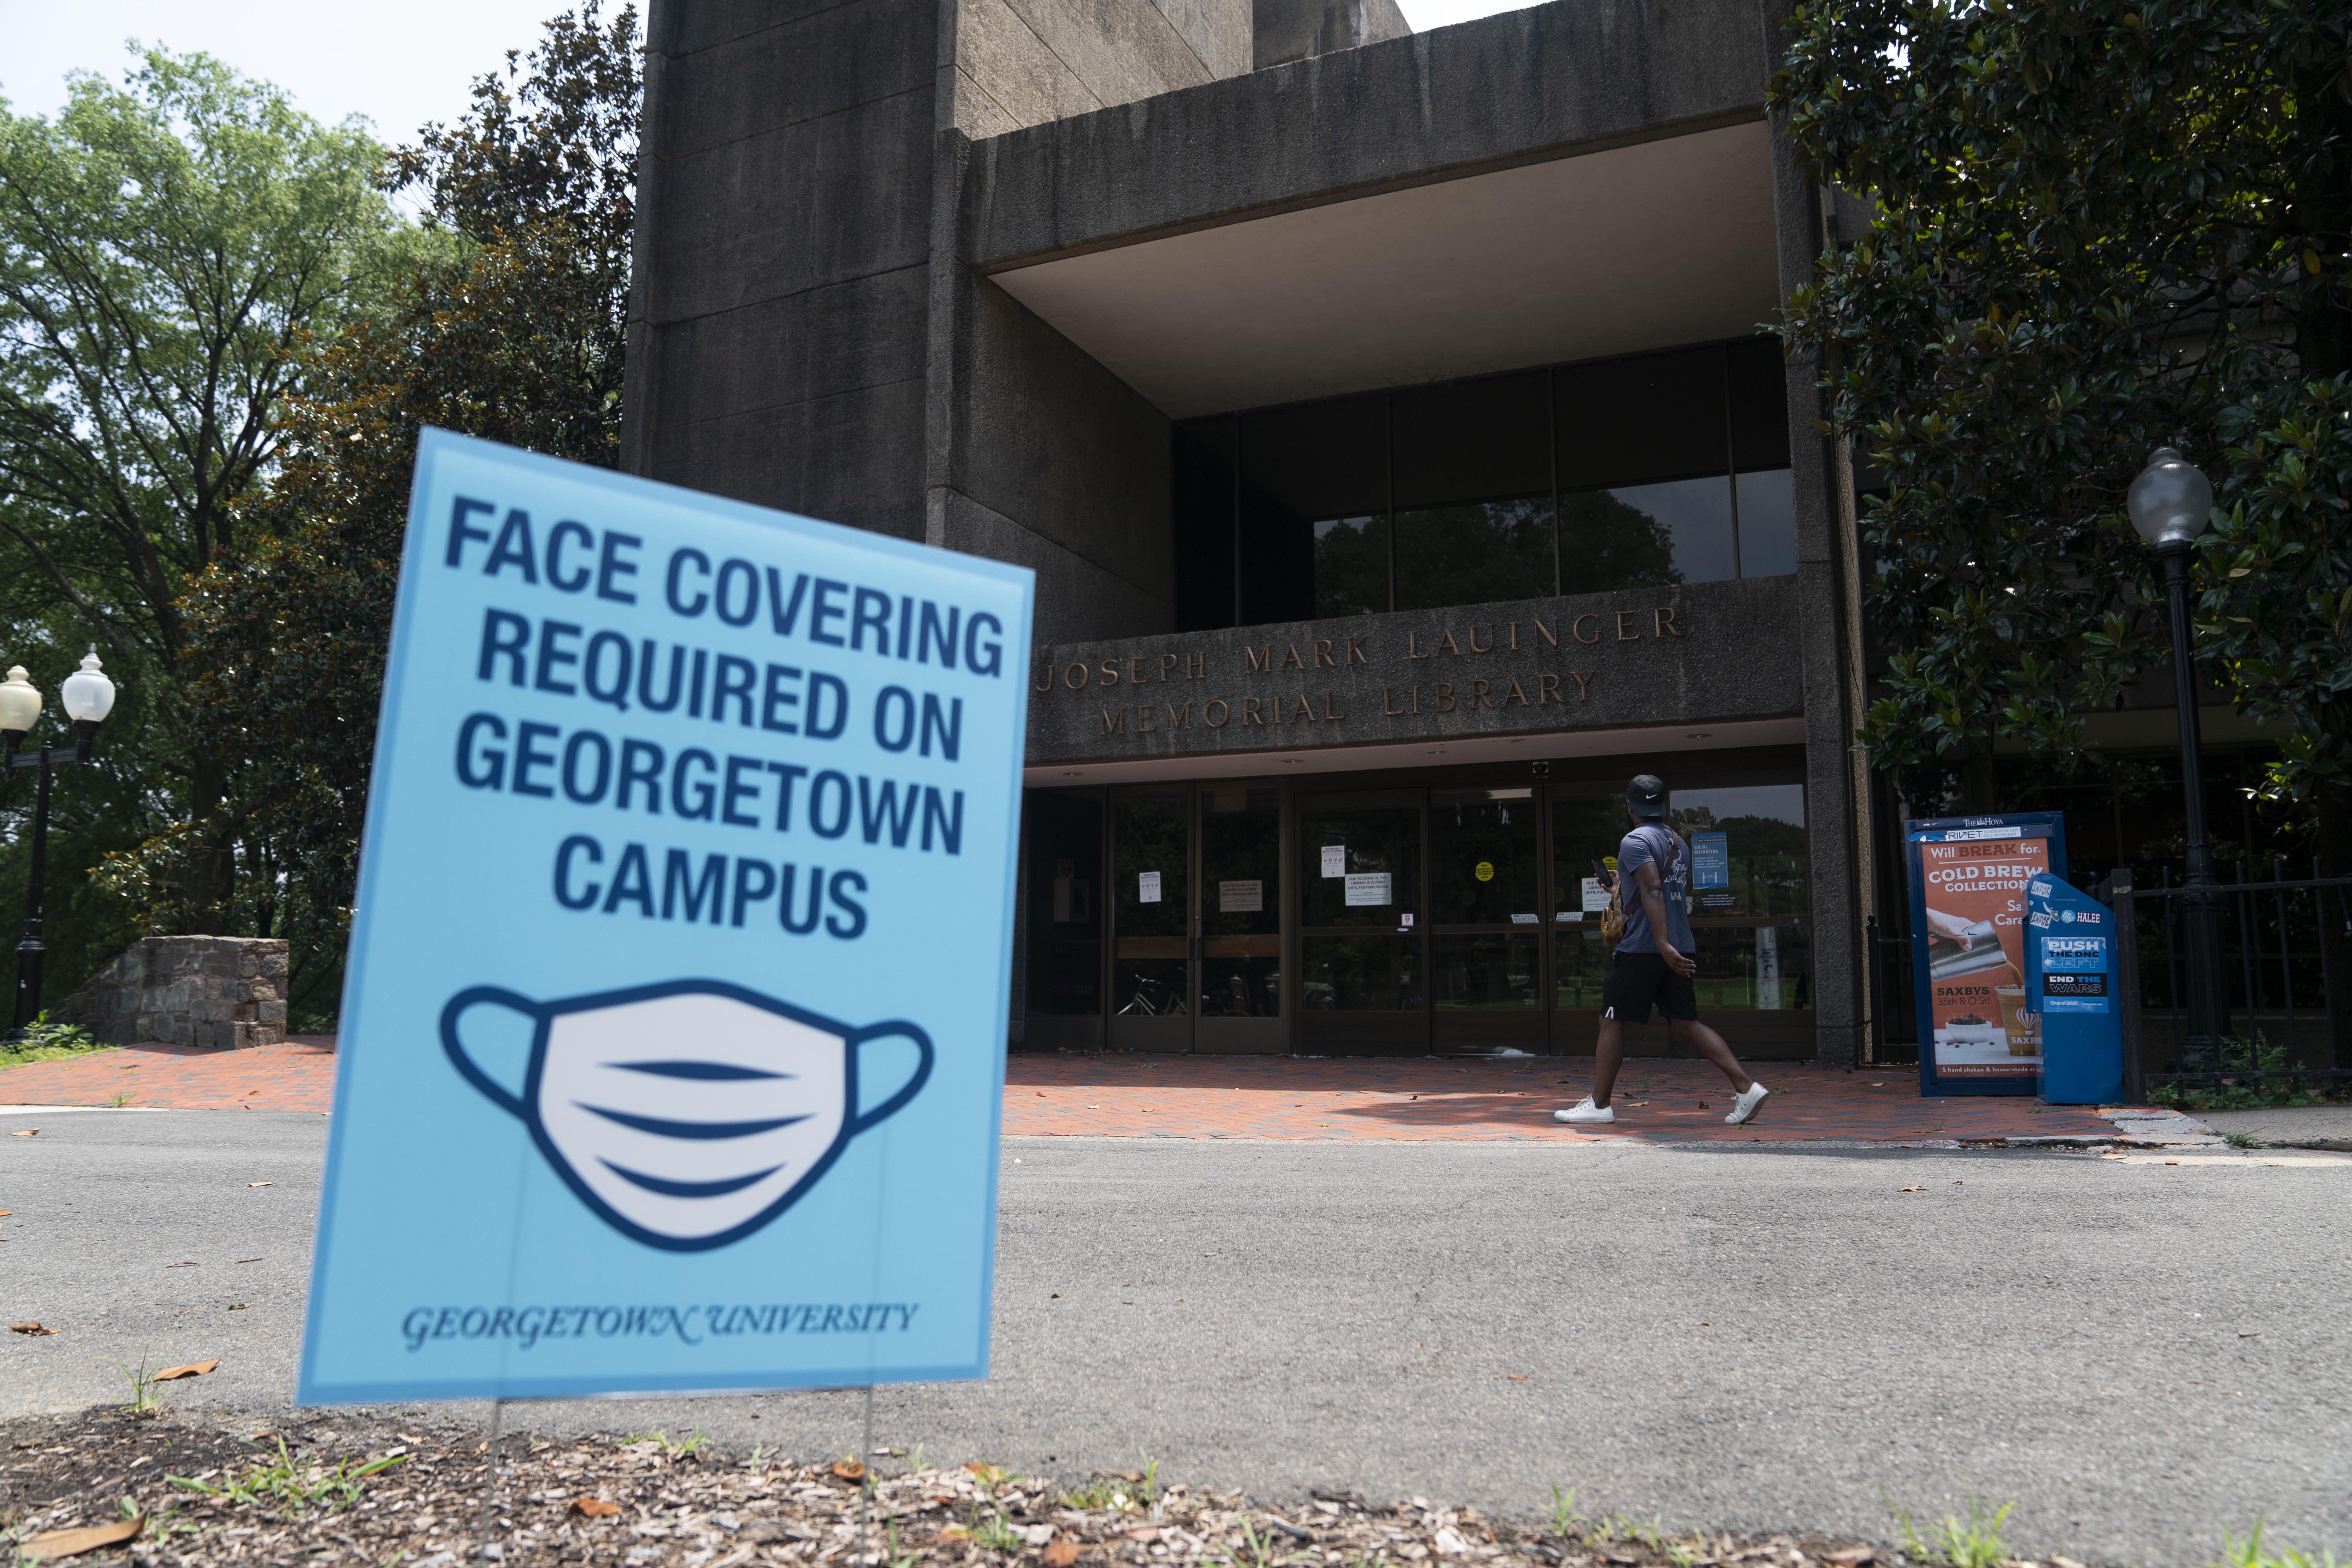 A sign reminding people to wear face masks is seen in front of a library on Georgetown University's main campus in Washington, D.C., on July 7, 2020.